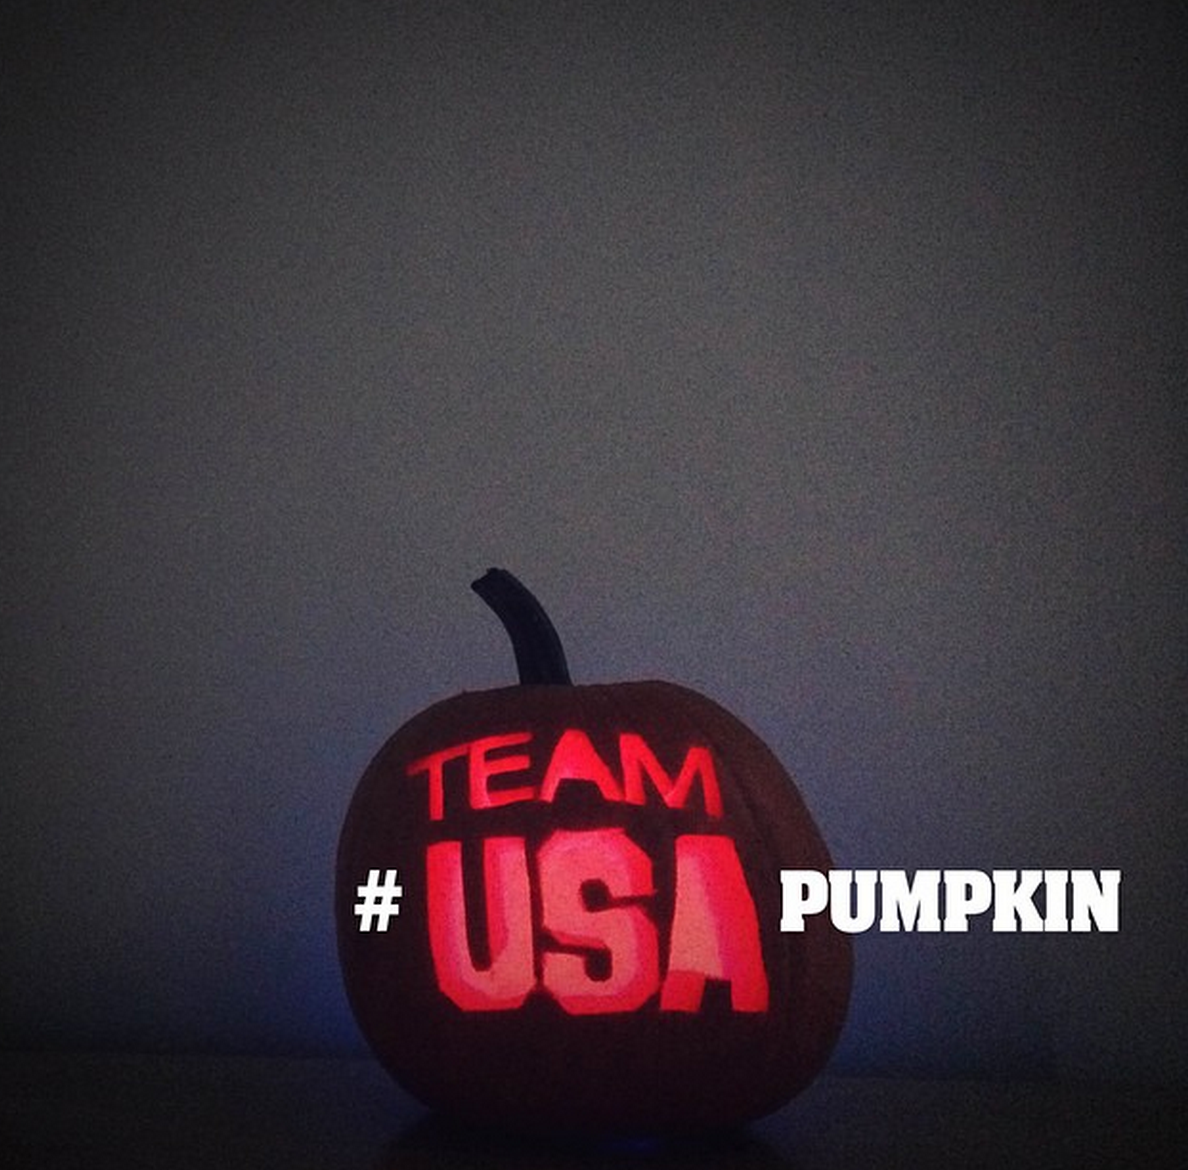 Happy halloween send us your team usa themed pumpkins using the